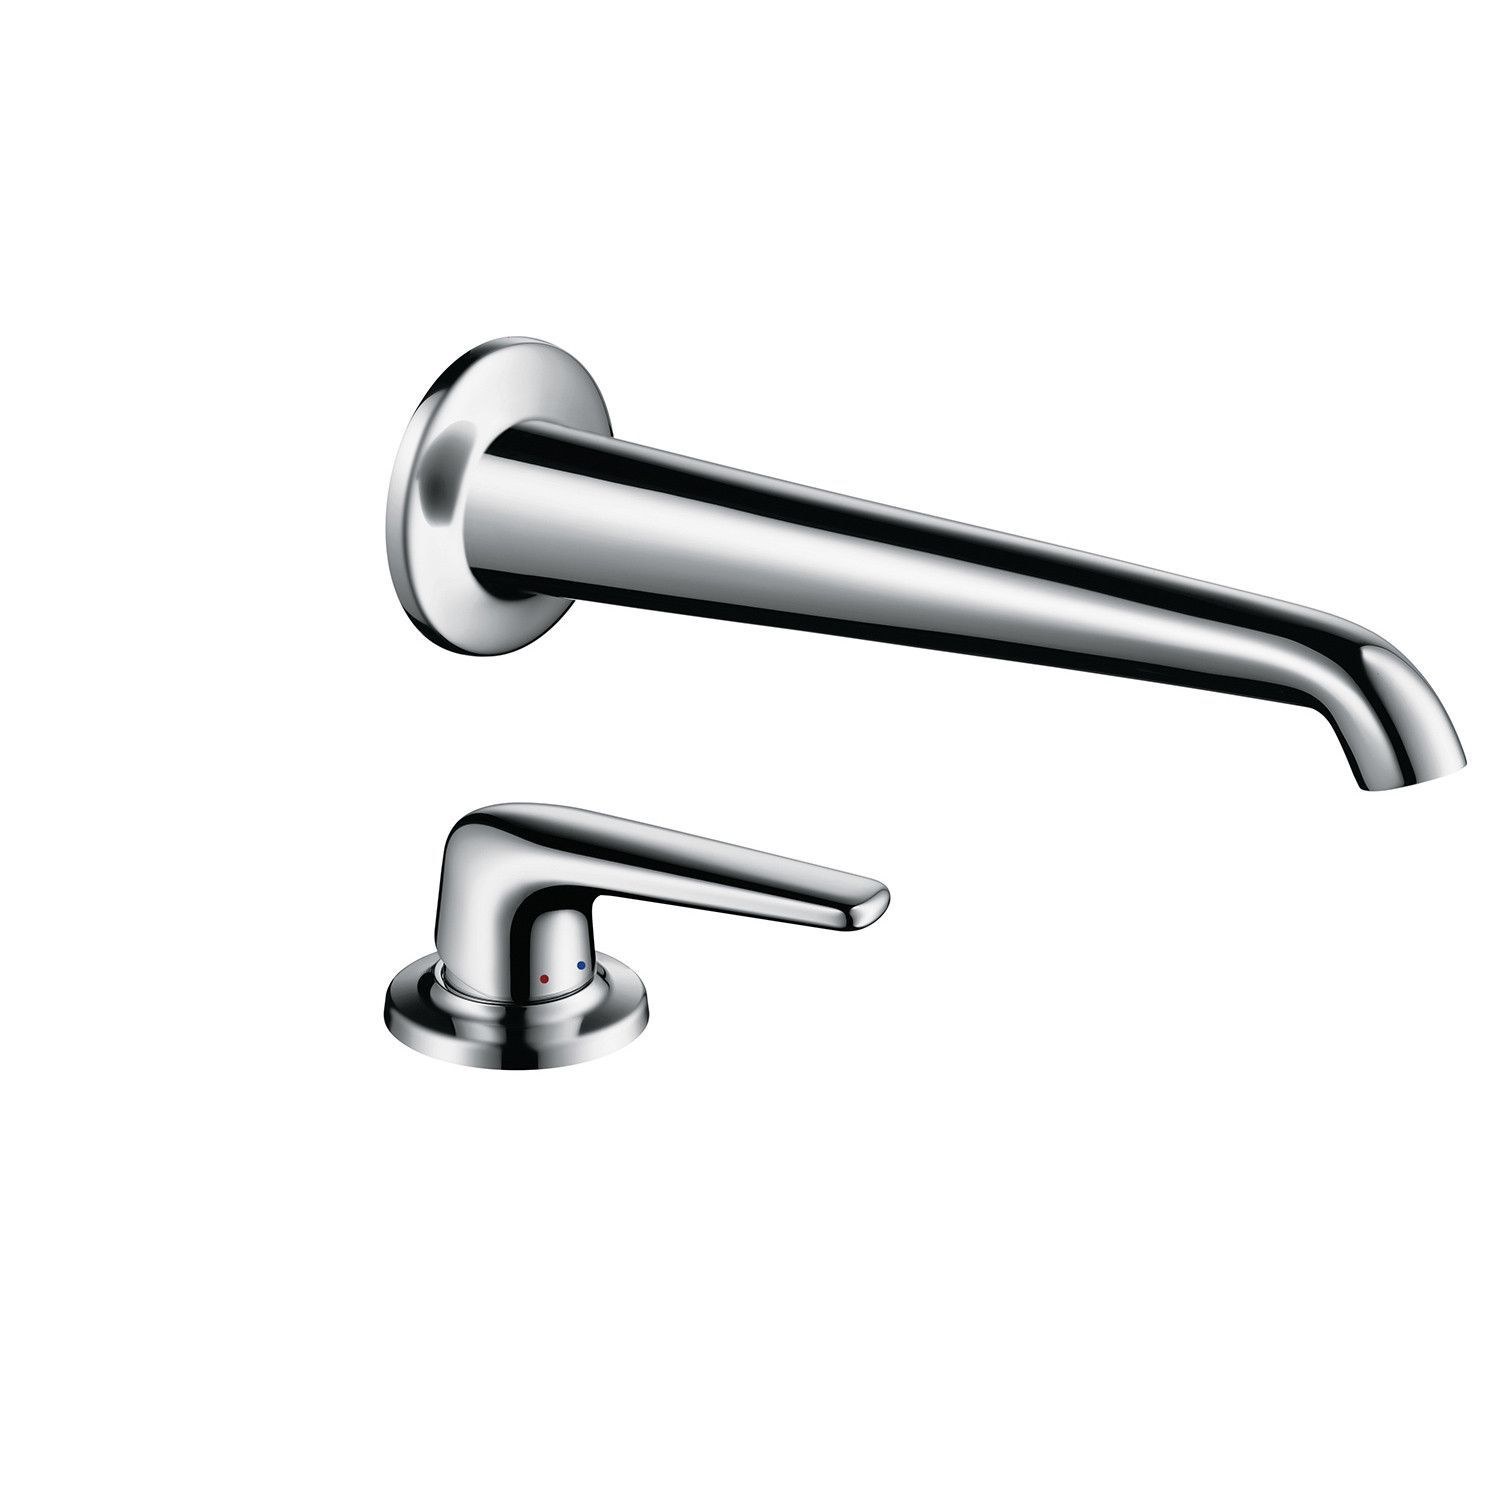 com lokiea h wall faucets hansgrohe kitchen qualitybath file talis c product htm faucet mount